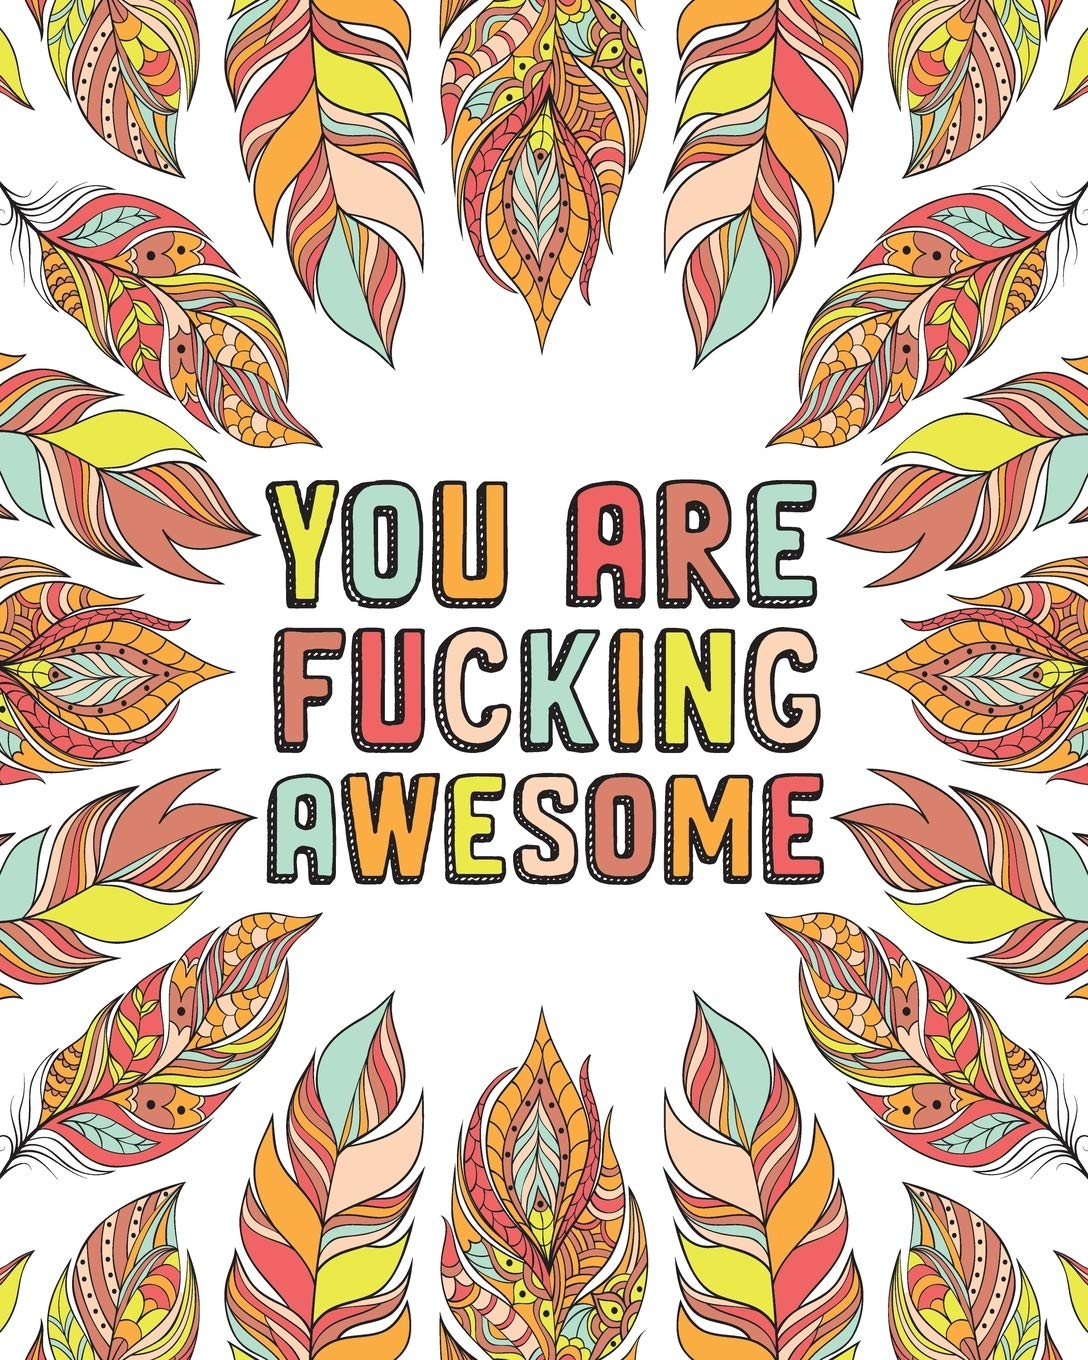 - Amazon.com: YOU ARE FUCKING AWESOME: A Motivating Swearing